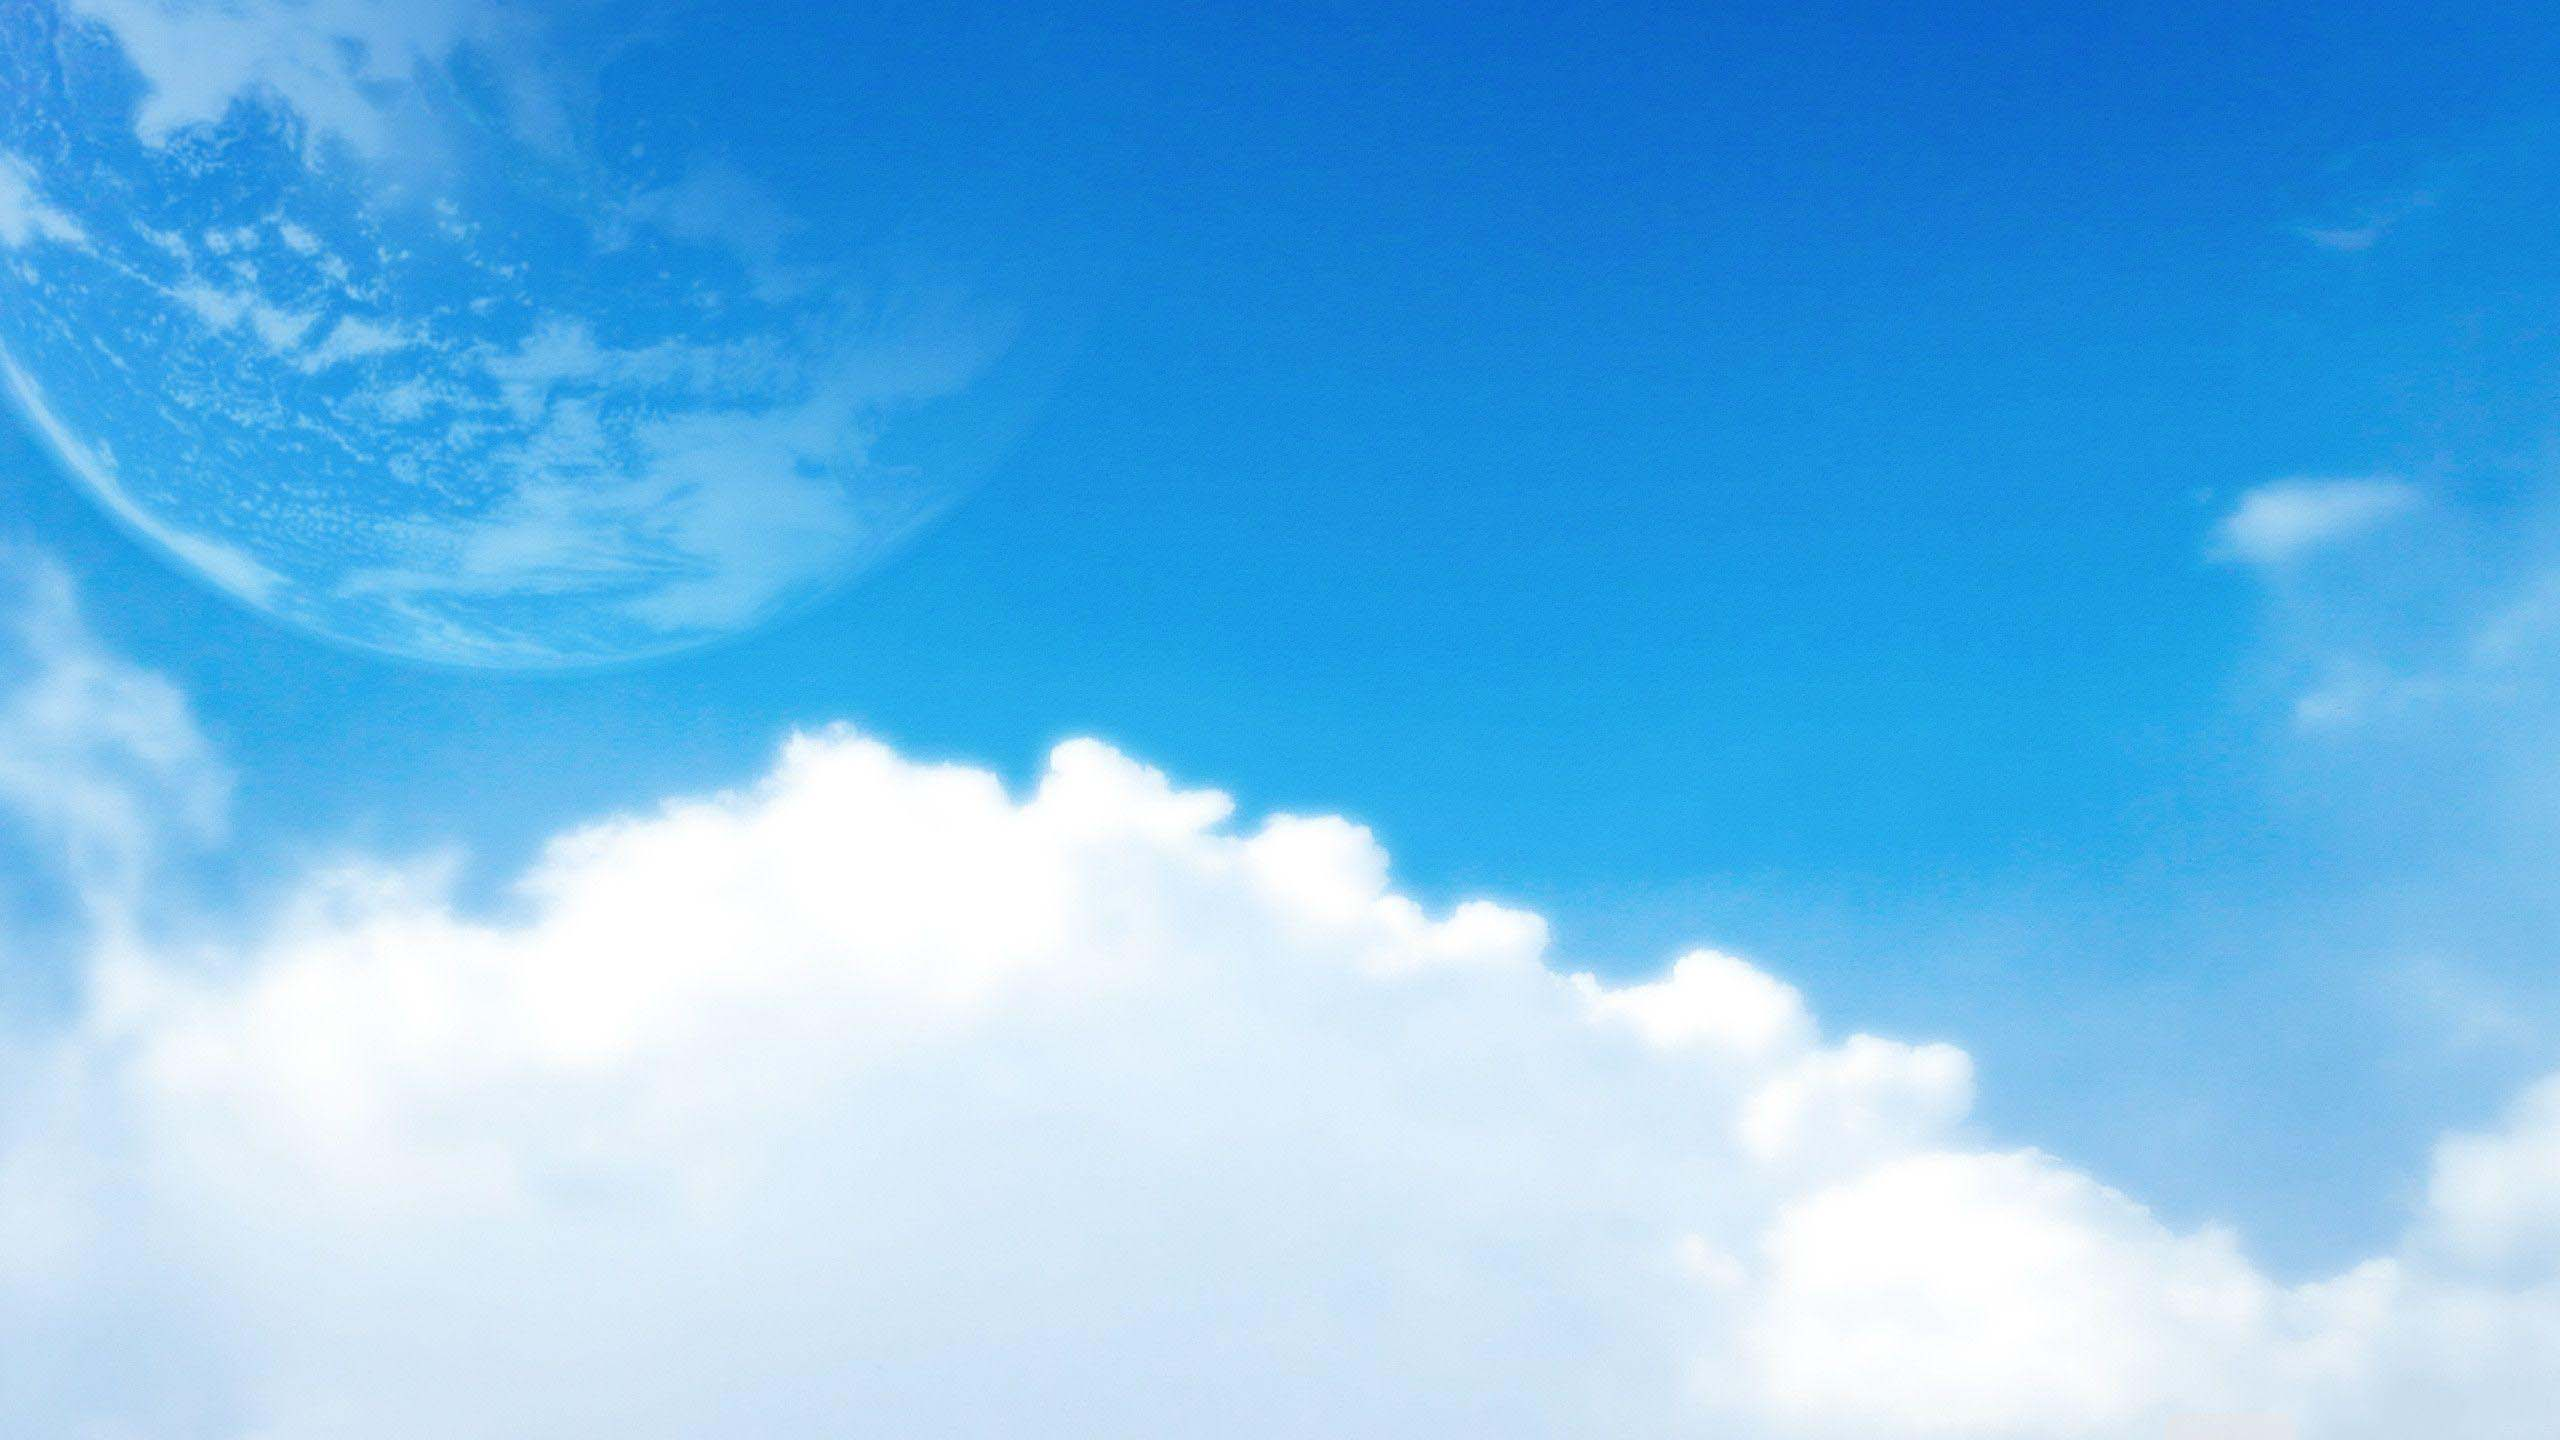 Beautiful cloud sky wallpaper